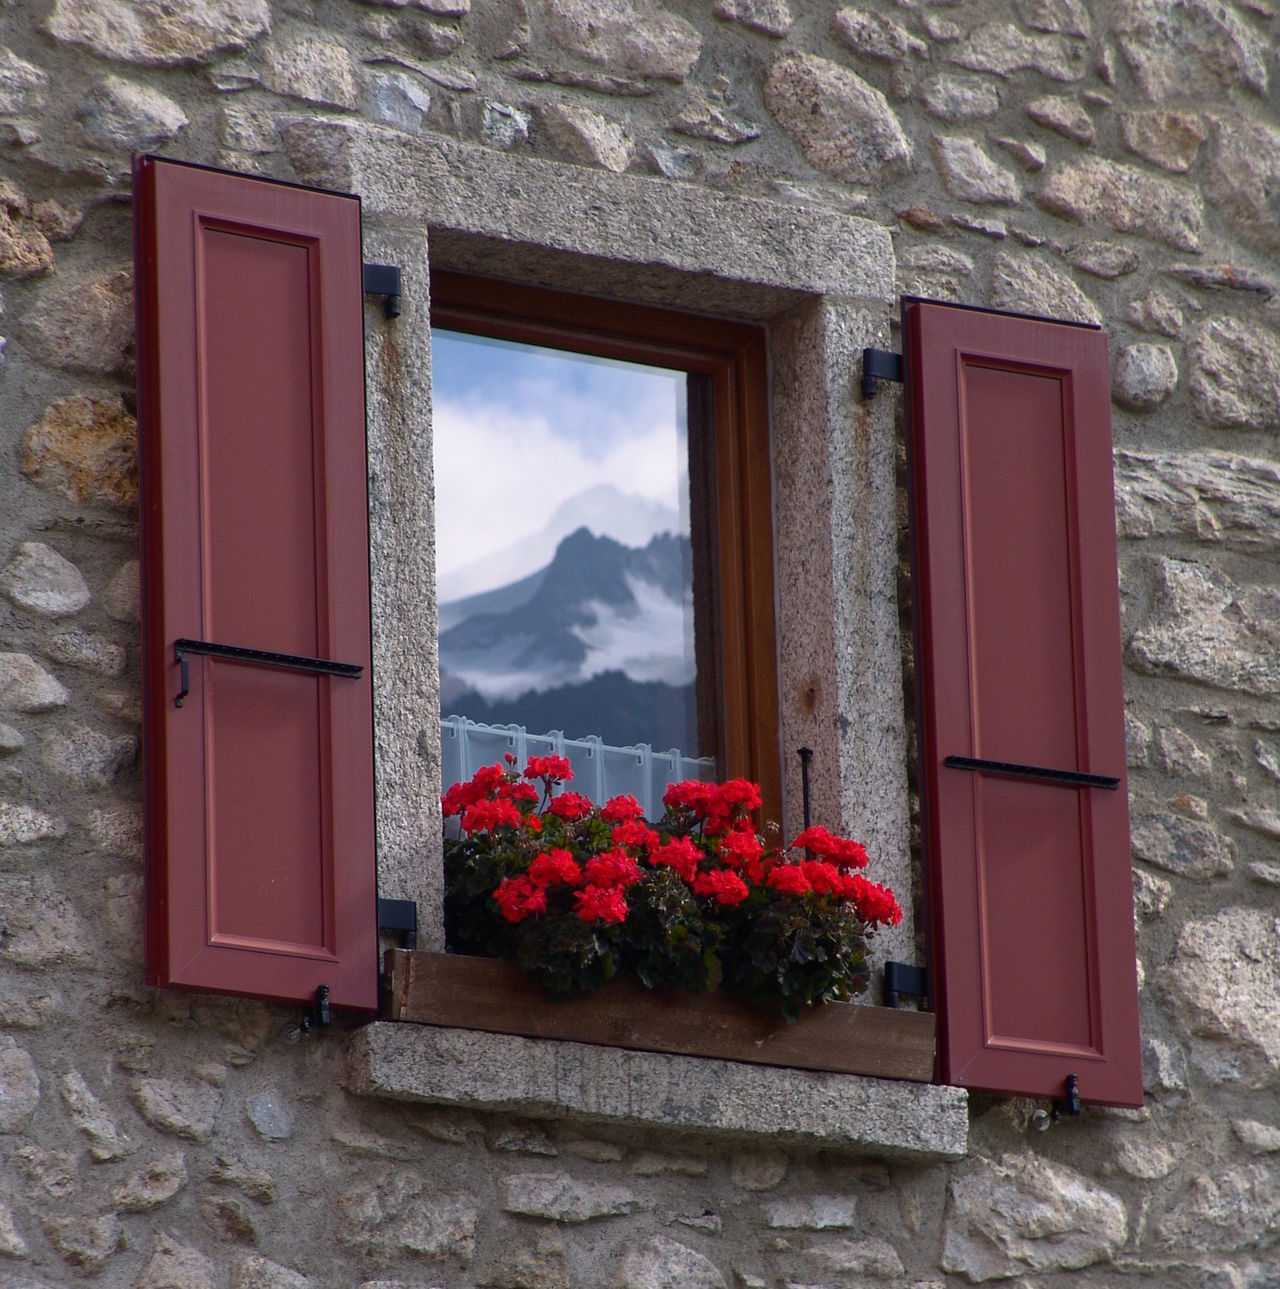 Cloud - Sky Clouds Clouds And Sky Flower Hill Hills Mirror Mirror Picture Mirror Reflection Mirrored Mountain Red Reflection Sky Stone Wall Window Window Frame Windows And Doors Window Art Window Reflections